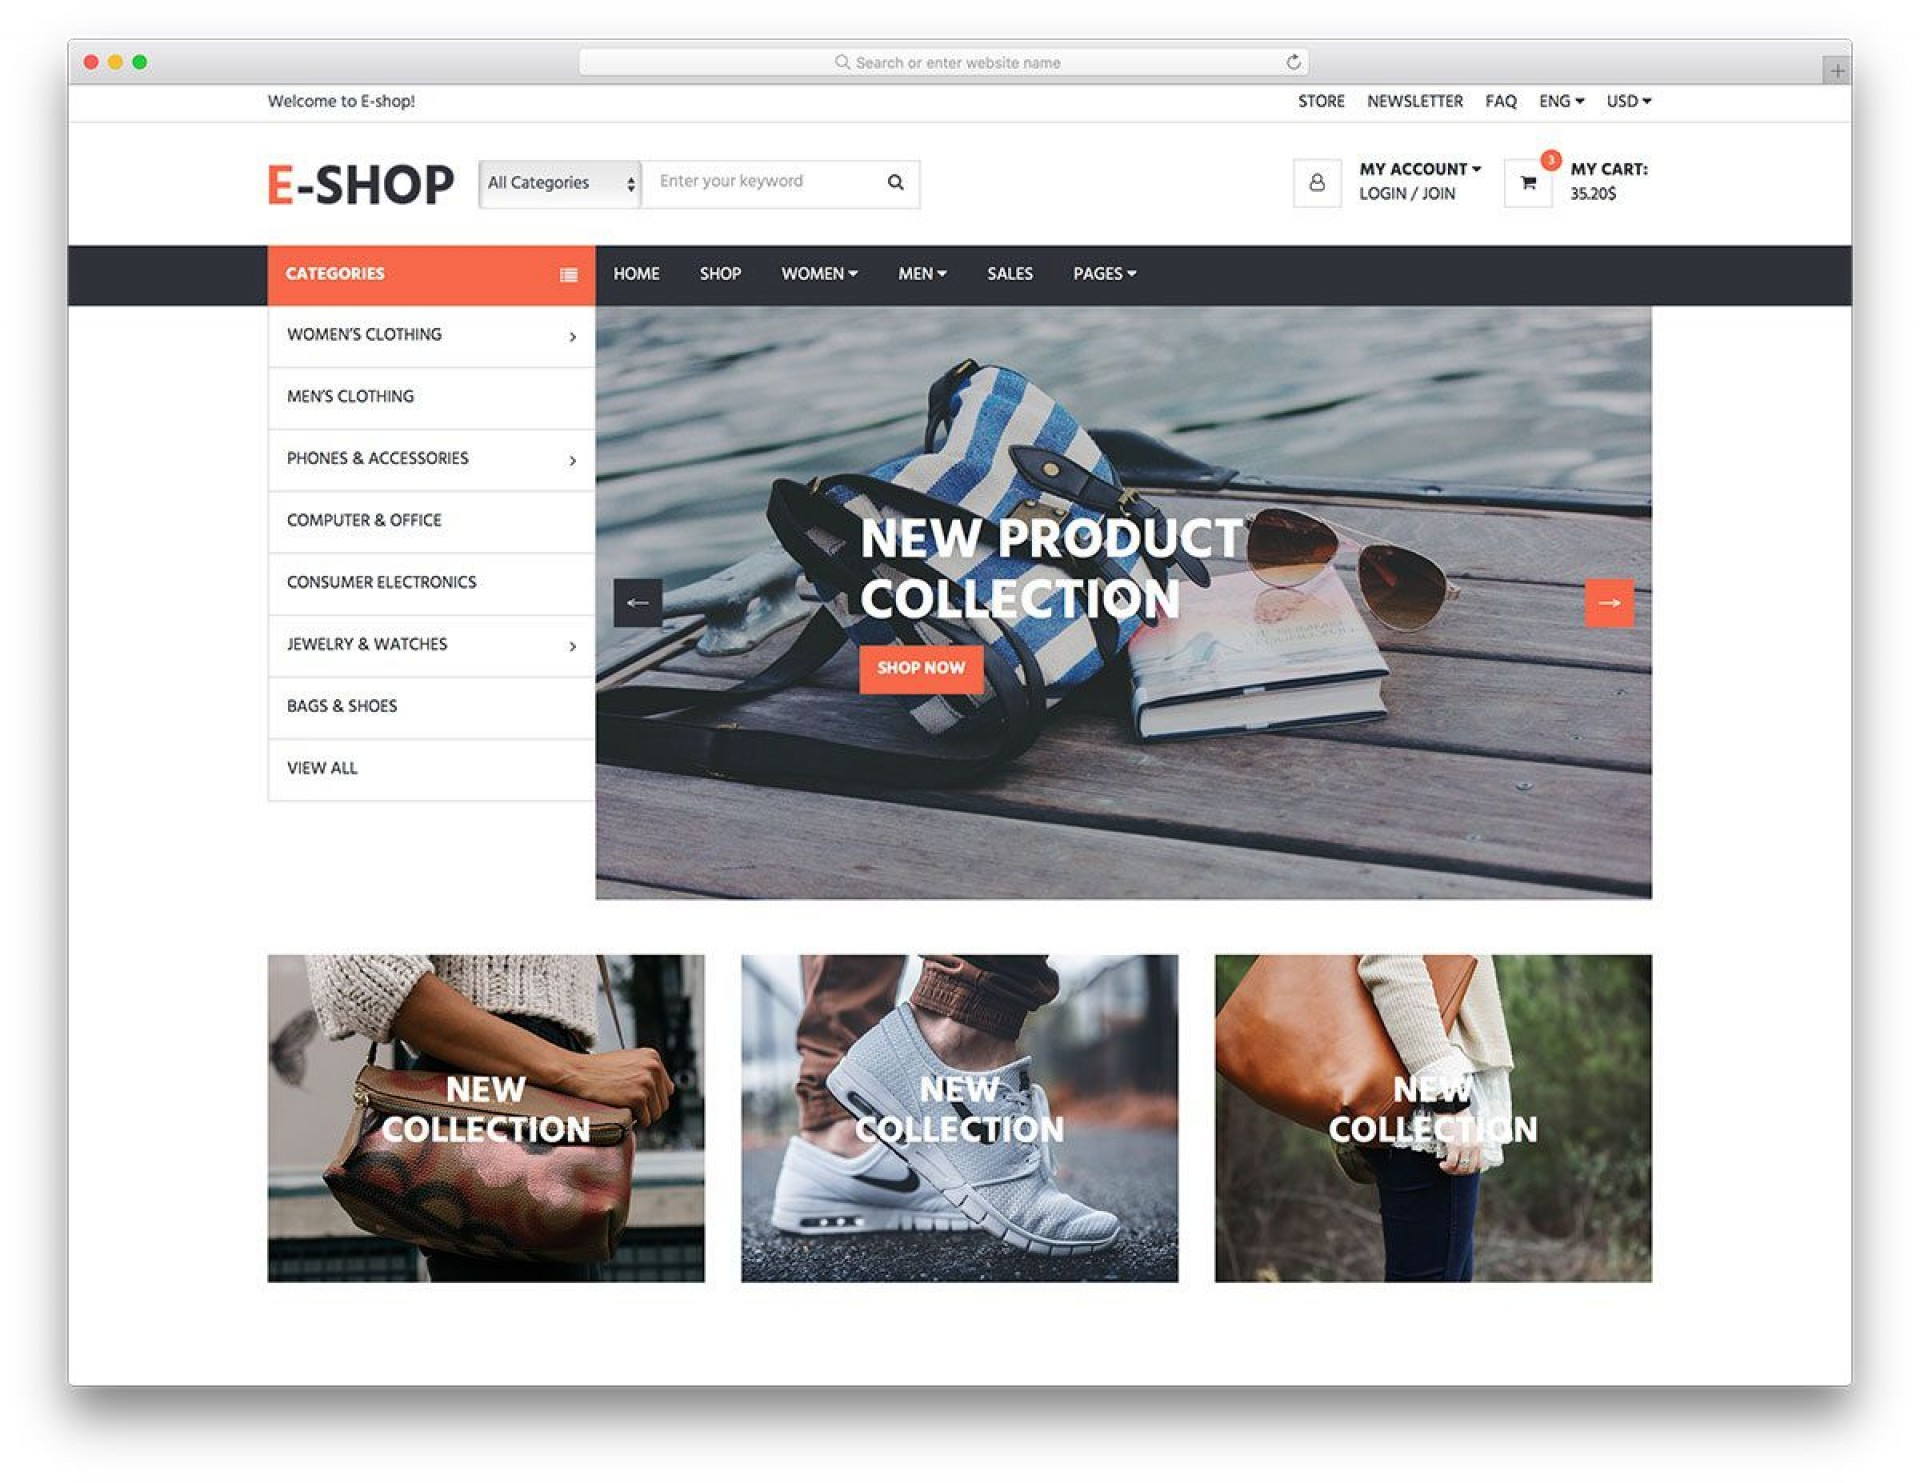 004 Rare Free Ecommerce Website Template Image  With Shopping Cart Admin Panel Bootstrap1920